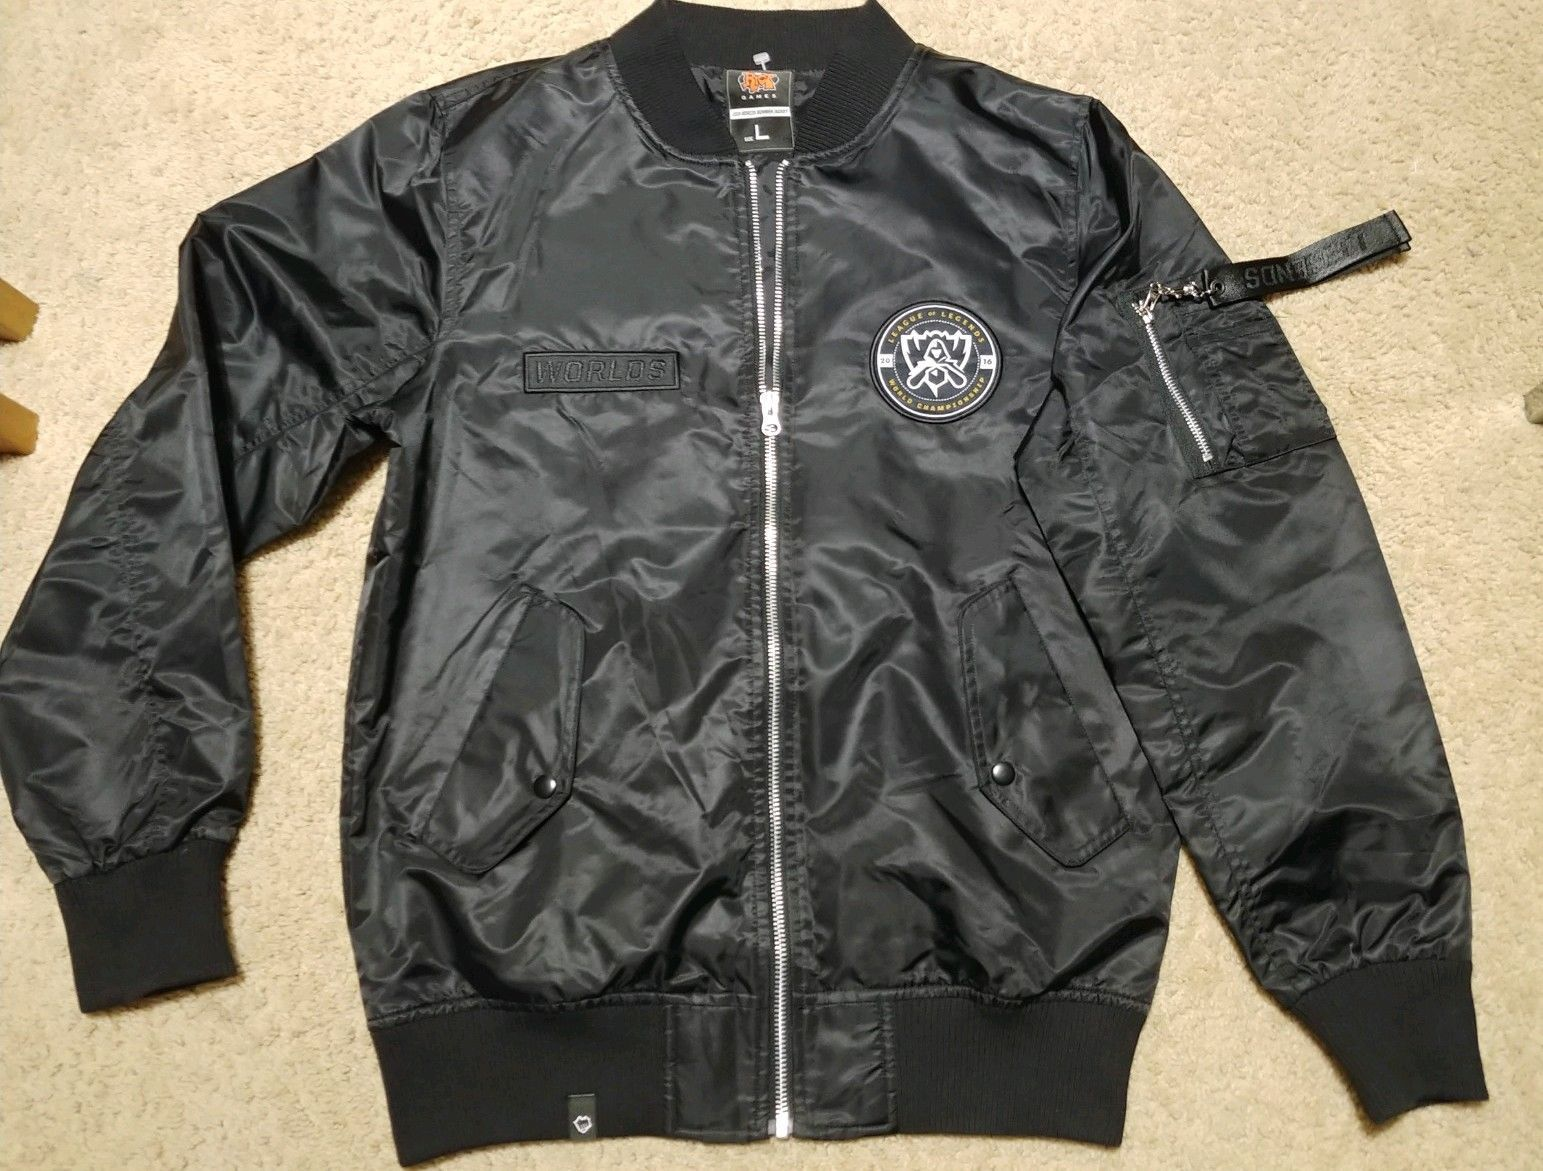 New League Of Legends Worlds 2016 Bomber Jacket L Buy Lol Accounts And Gifts At Leaguediamond Store Bomber Jacket Jackets League Of Legends [ 1171 x 1543 Pixel ]